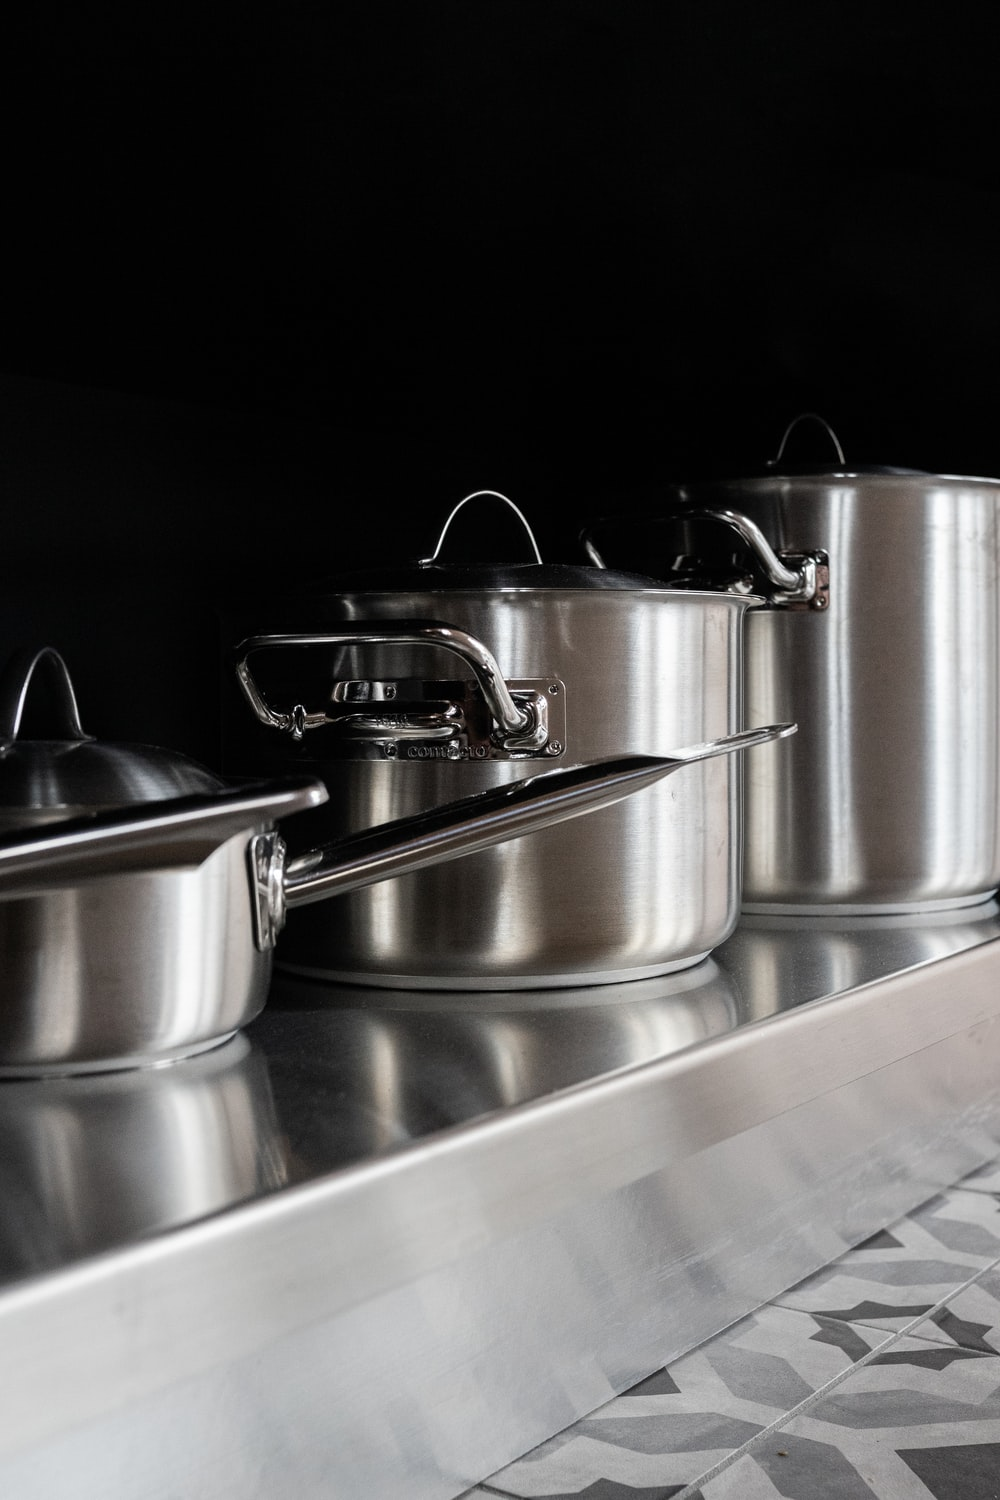 stainless steel cooking pots on stainless steel tray